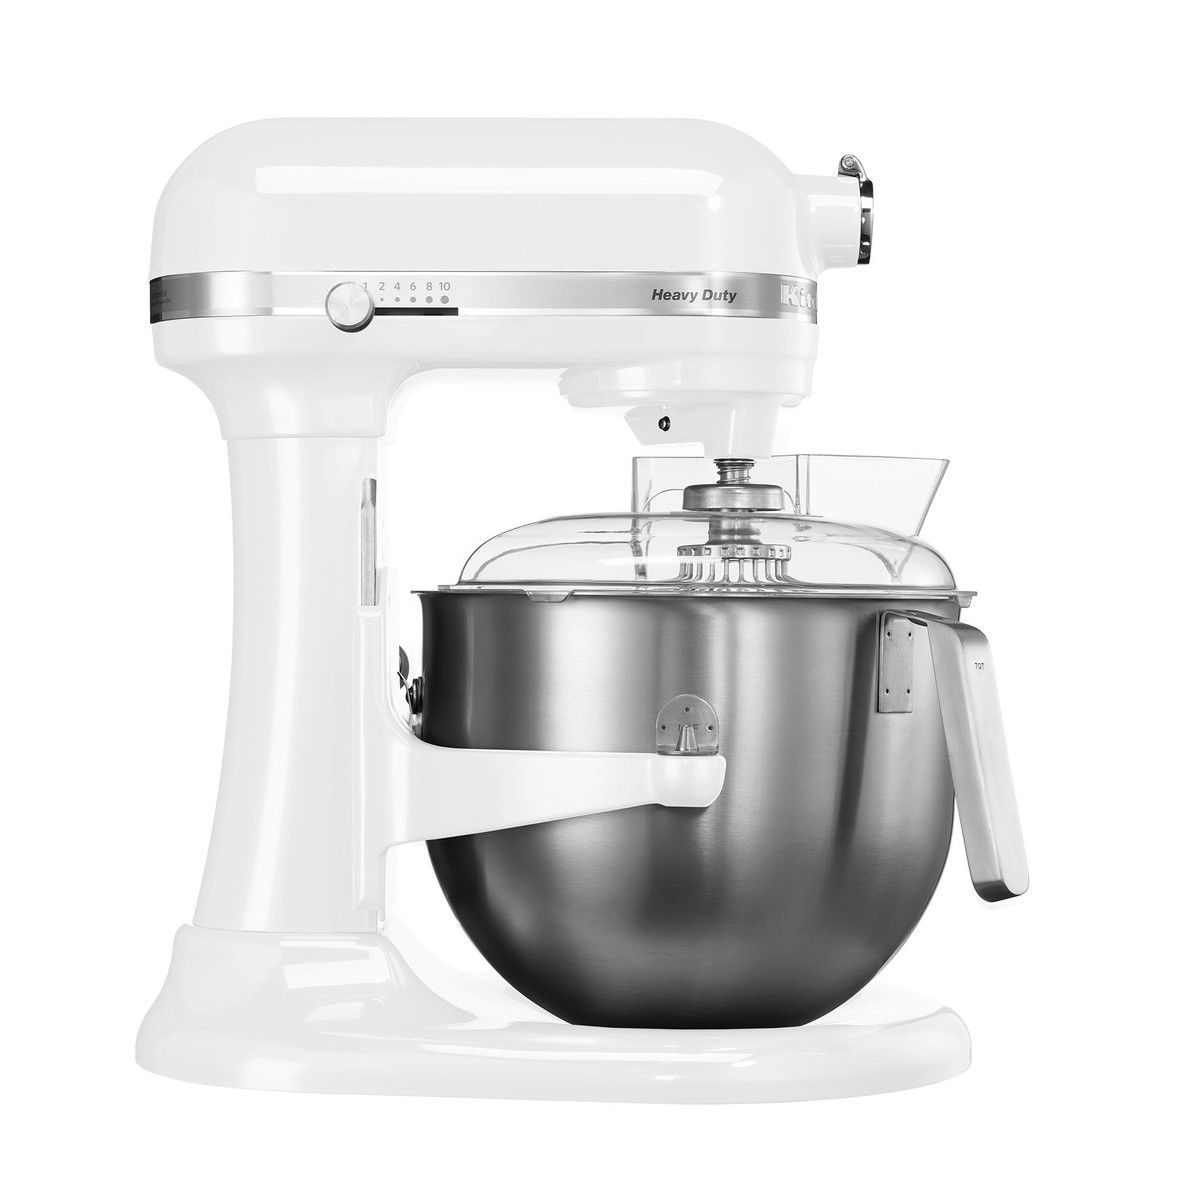 heavy duty 1 3 5ksm7591 food processor kitchenaid kitchen aid. Black Bedroom Furniture Sets. Home Design Ideas